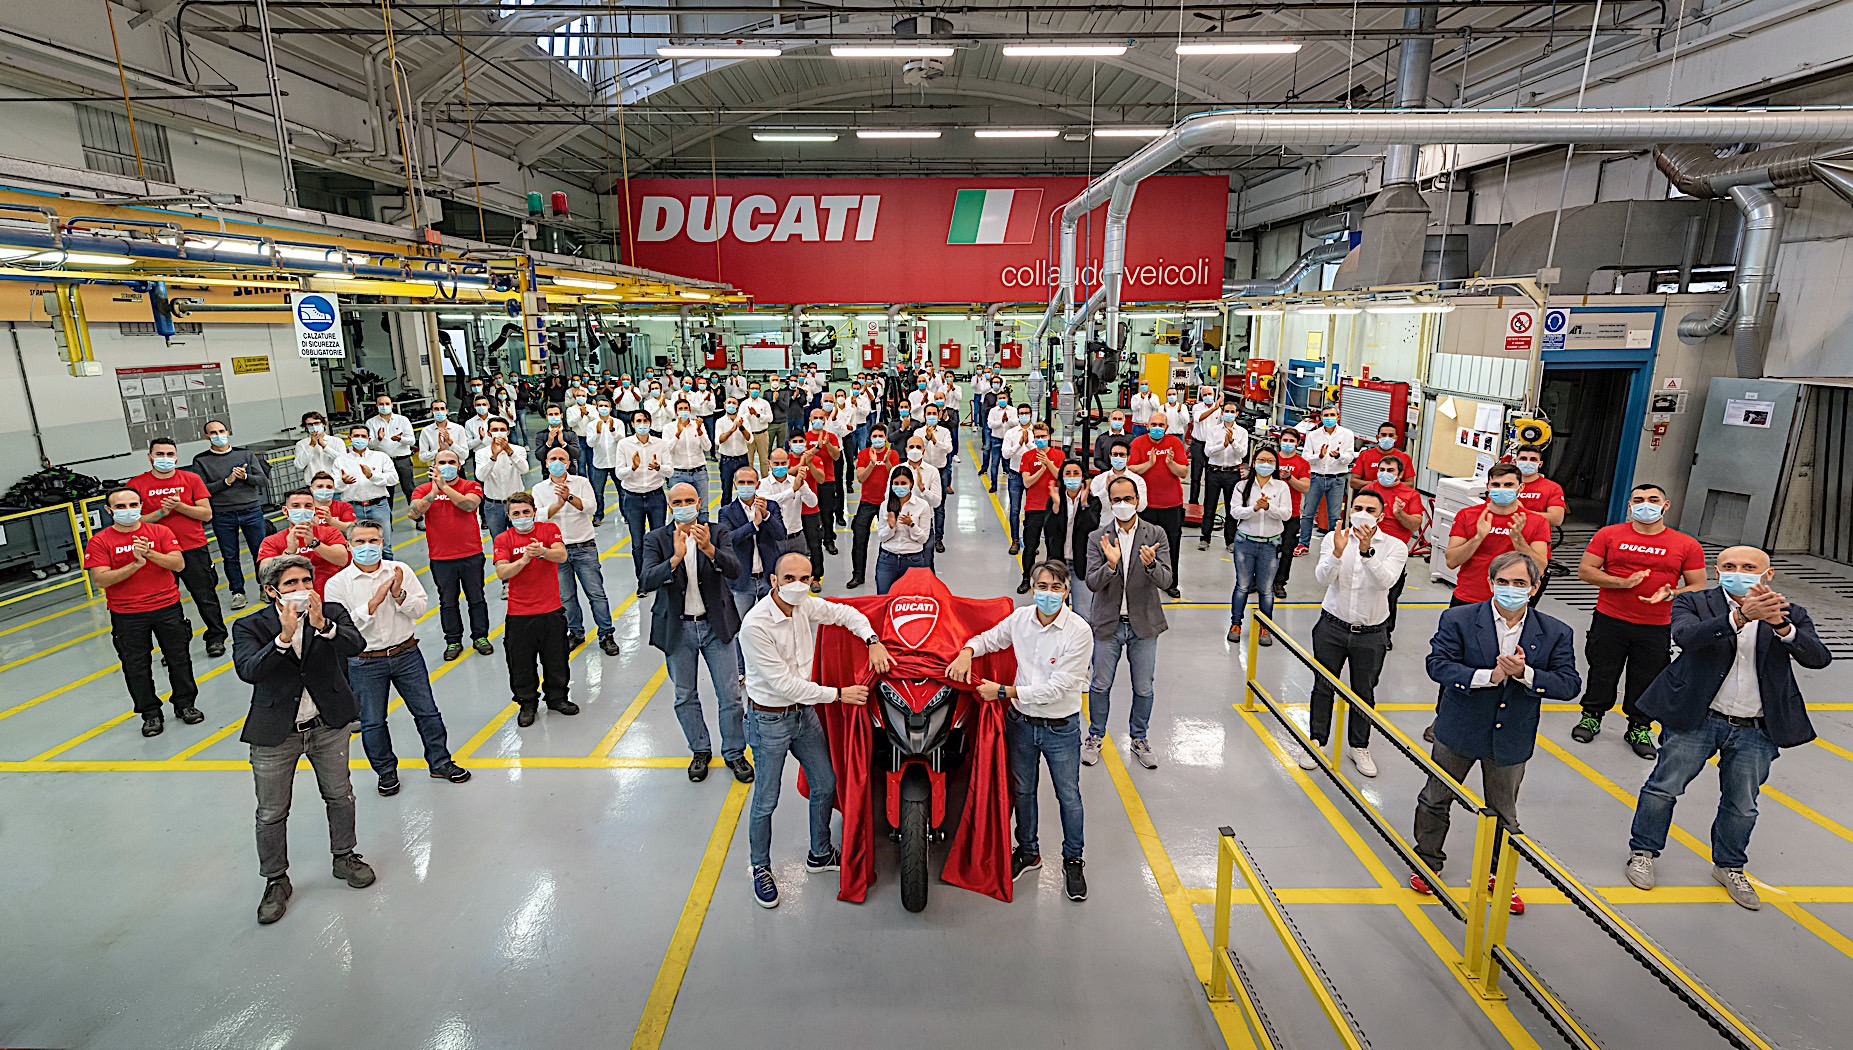 Ducati Multistrada V4 with radar tech enters production, unveiling on November 4